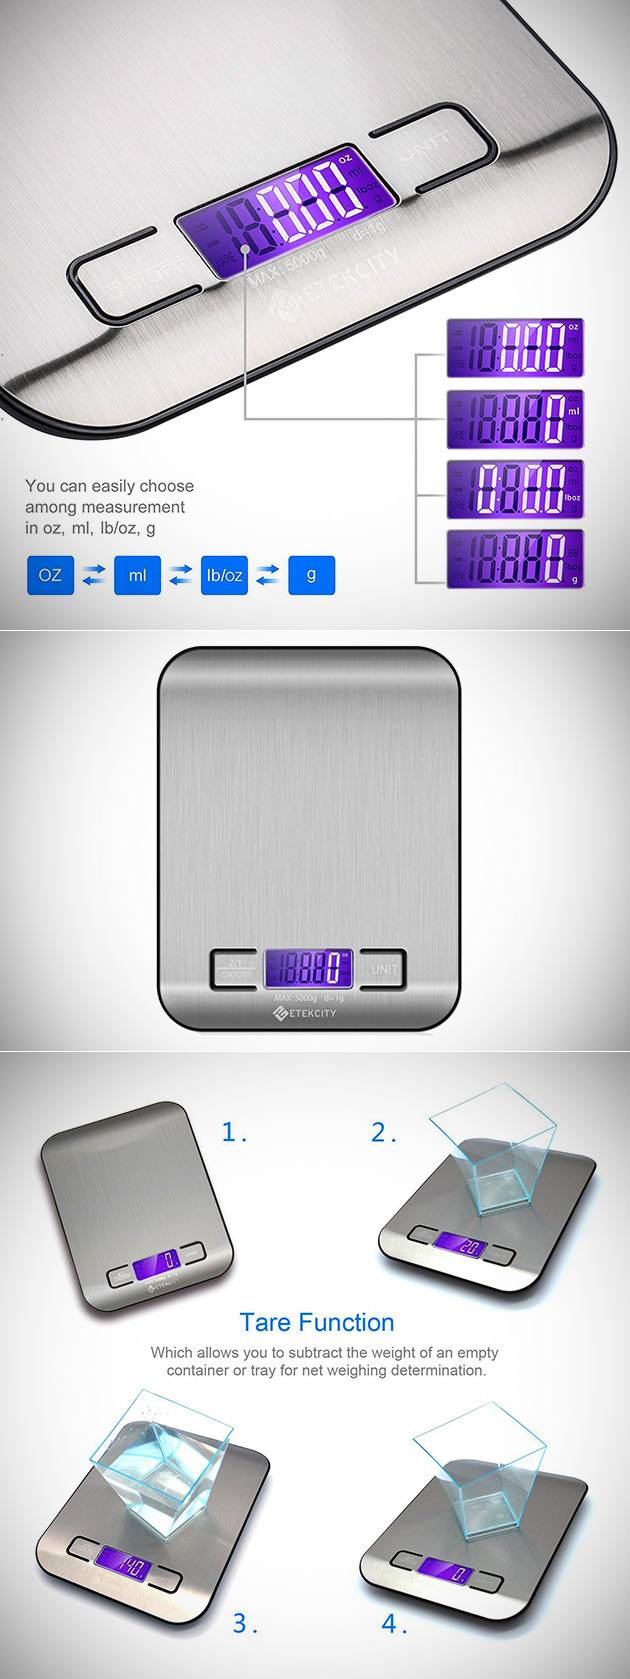 Etekcity Kitchen Scale